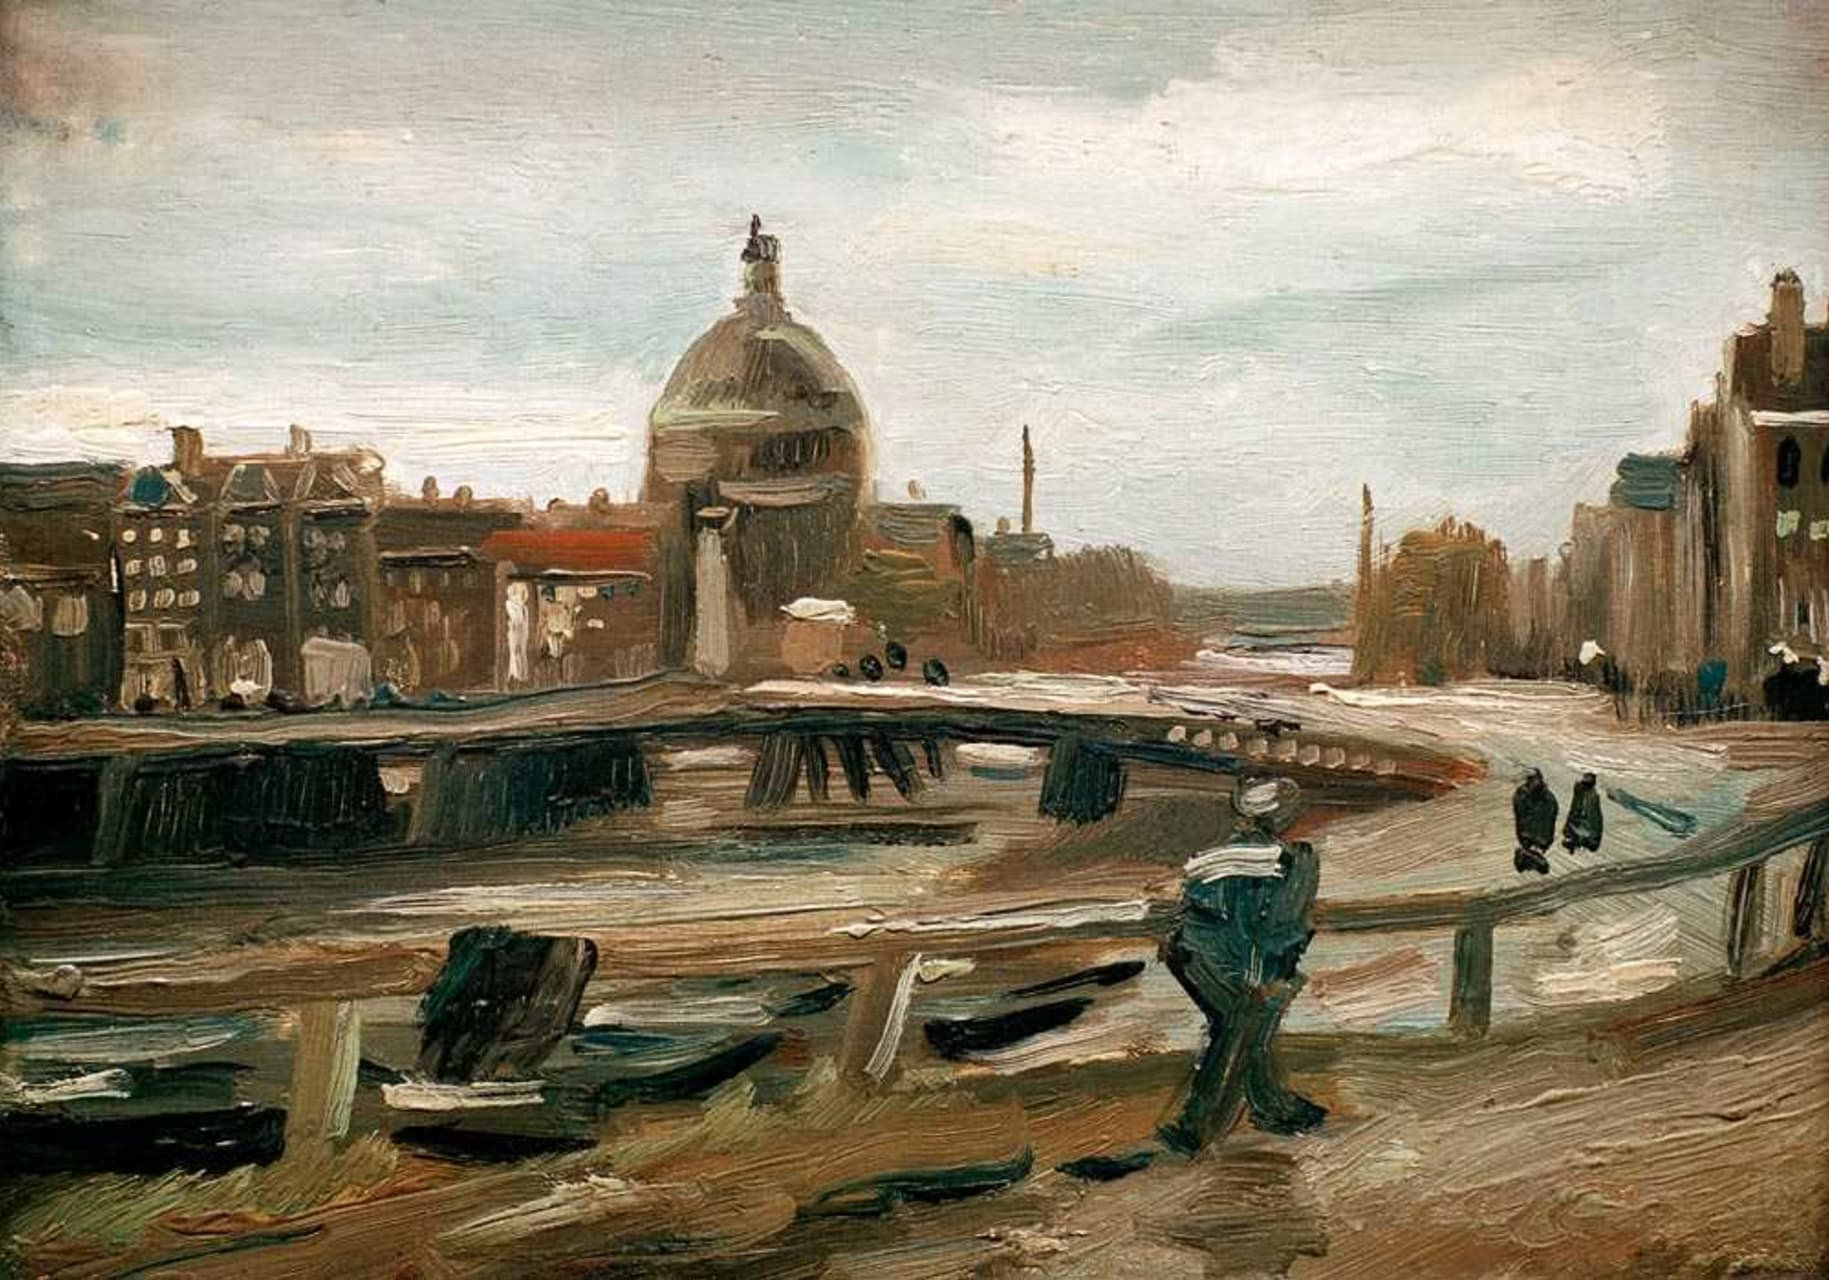 Amsterdam - Vincent Van Gogh: his early years